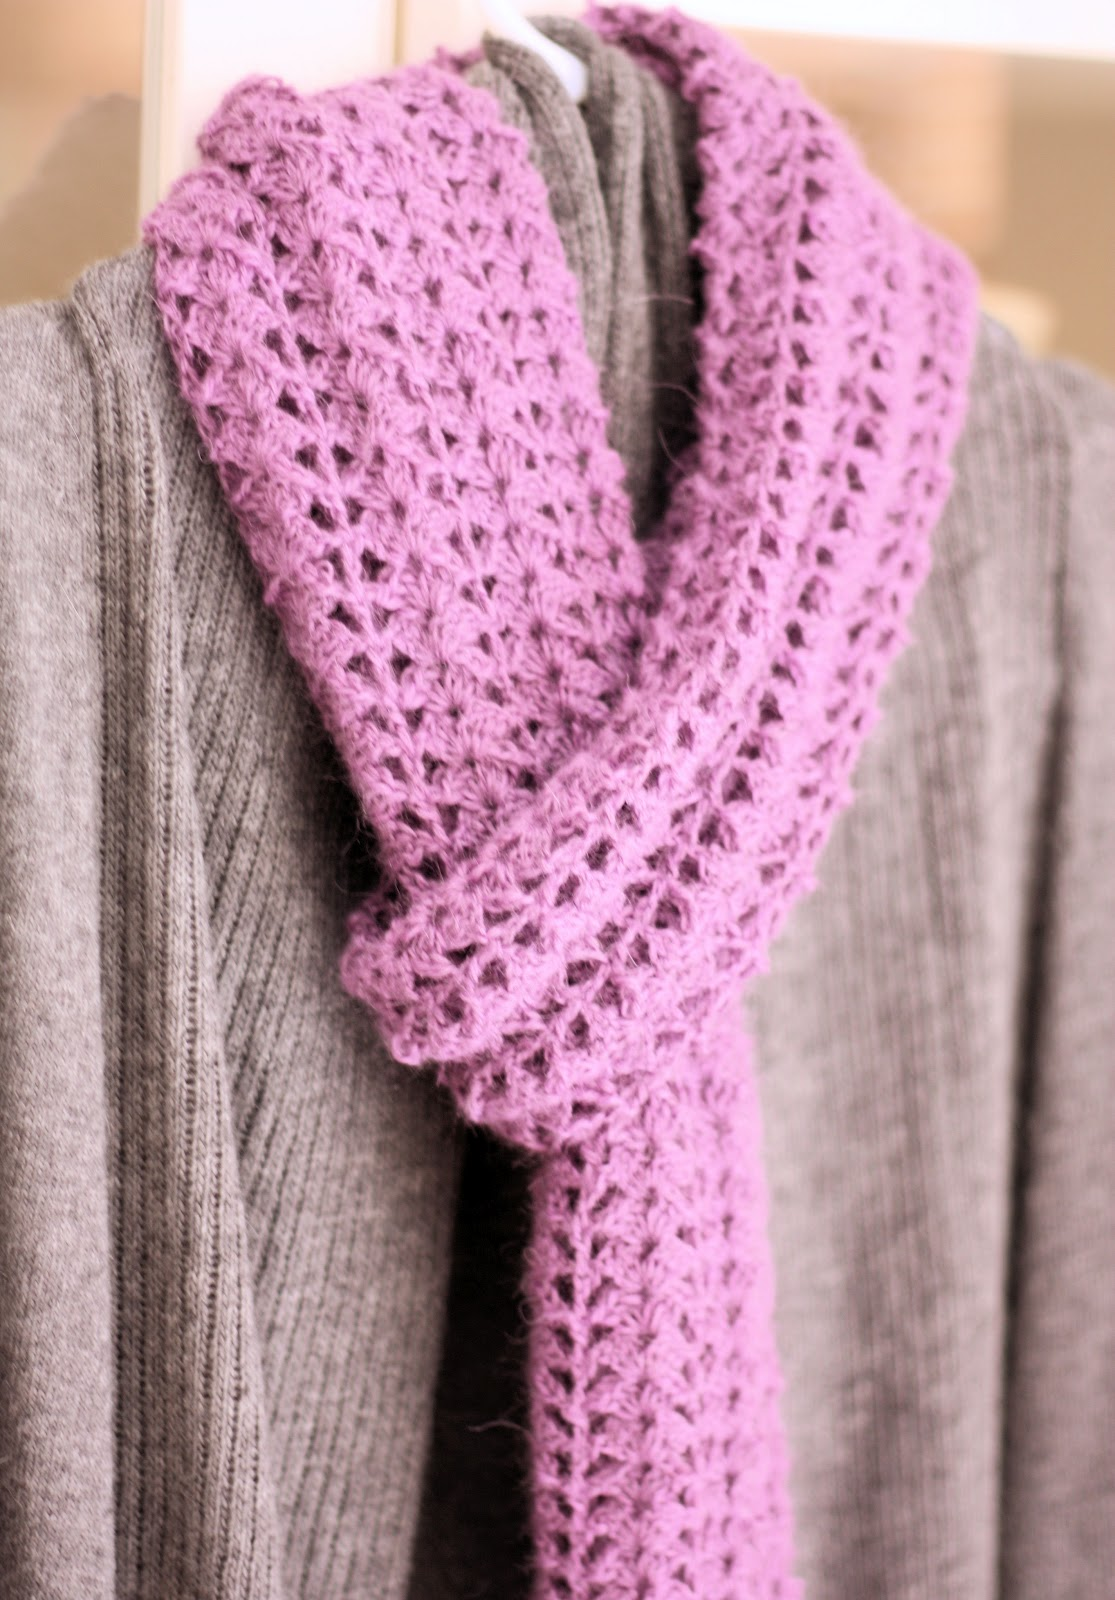 Easy Crochet Patterns For A Shawl : Crocheted Scarf {Free Pattern} - A Spoonful of Sugar